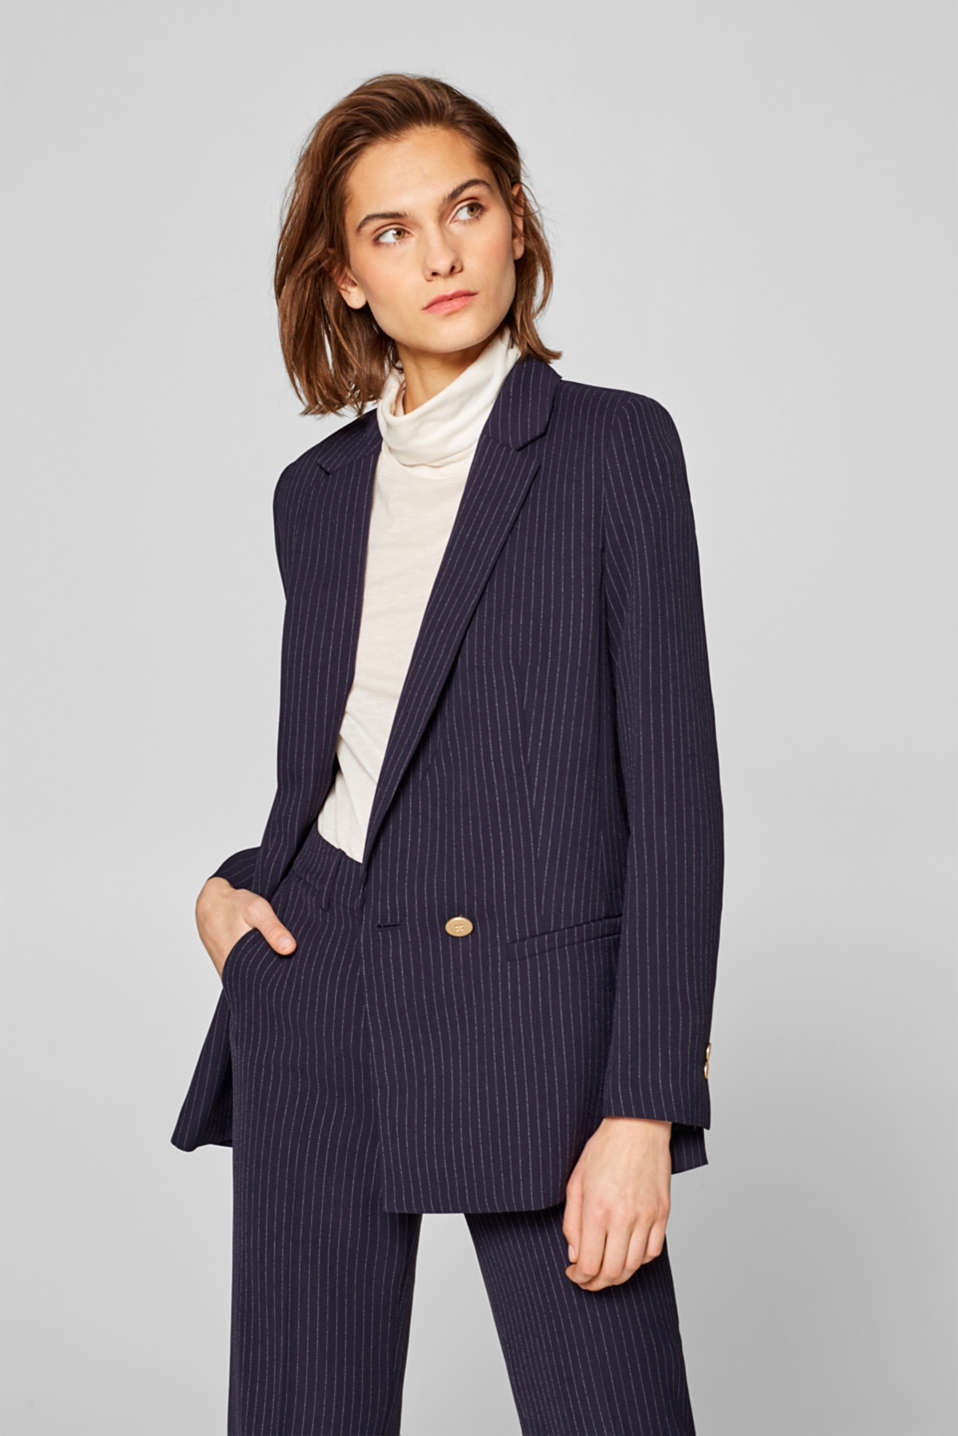 Esprit - PIN STRIPE mix + match blazer